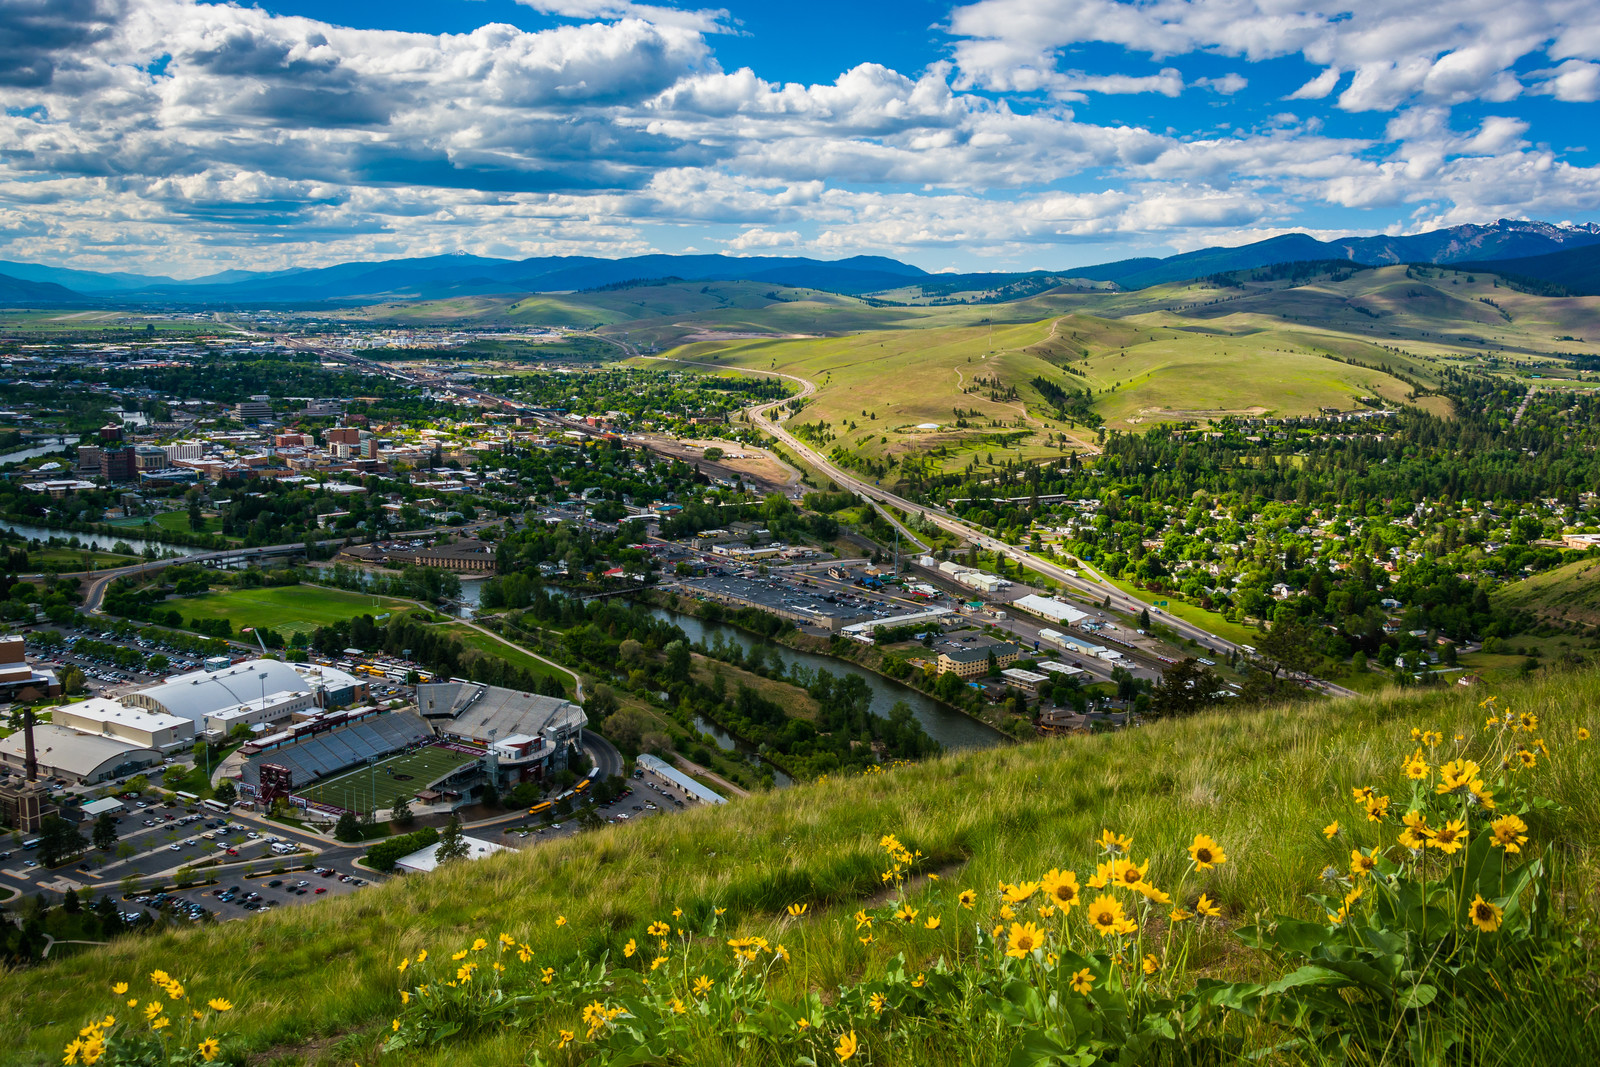 Sunny day photo from Mount Sentinel surrounded by yellow daisy-like flowers looking down on Missoula